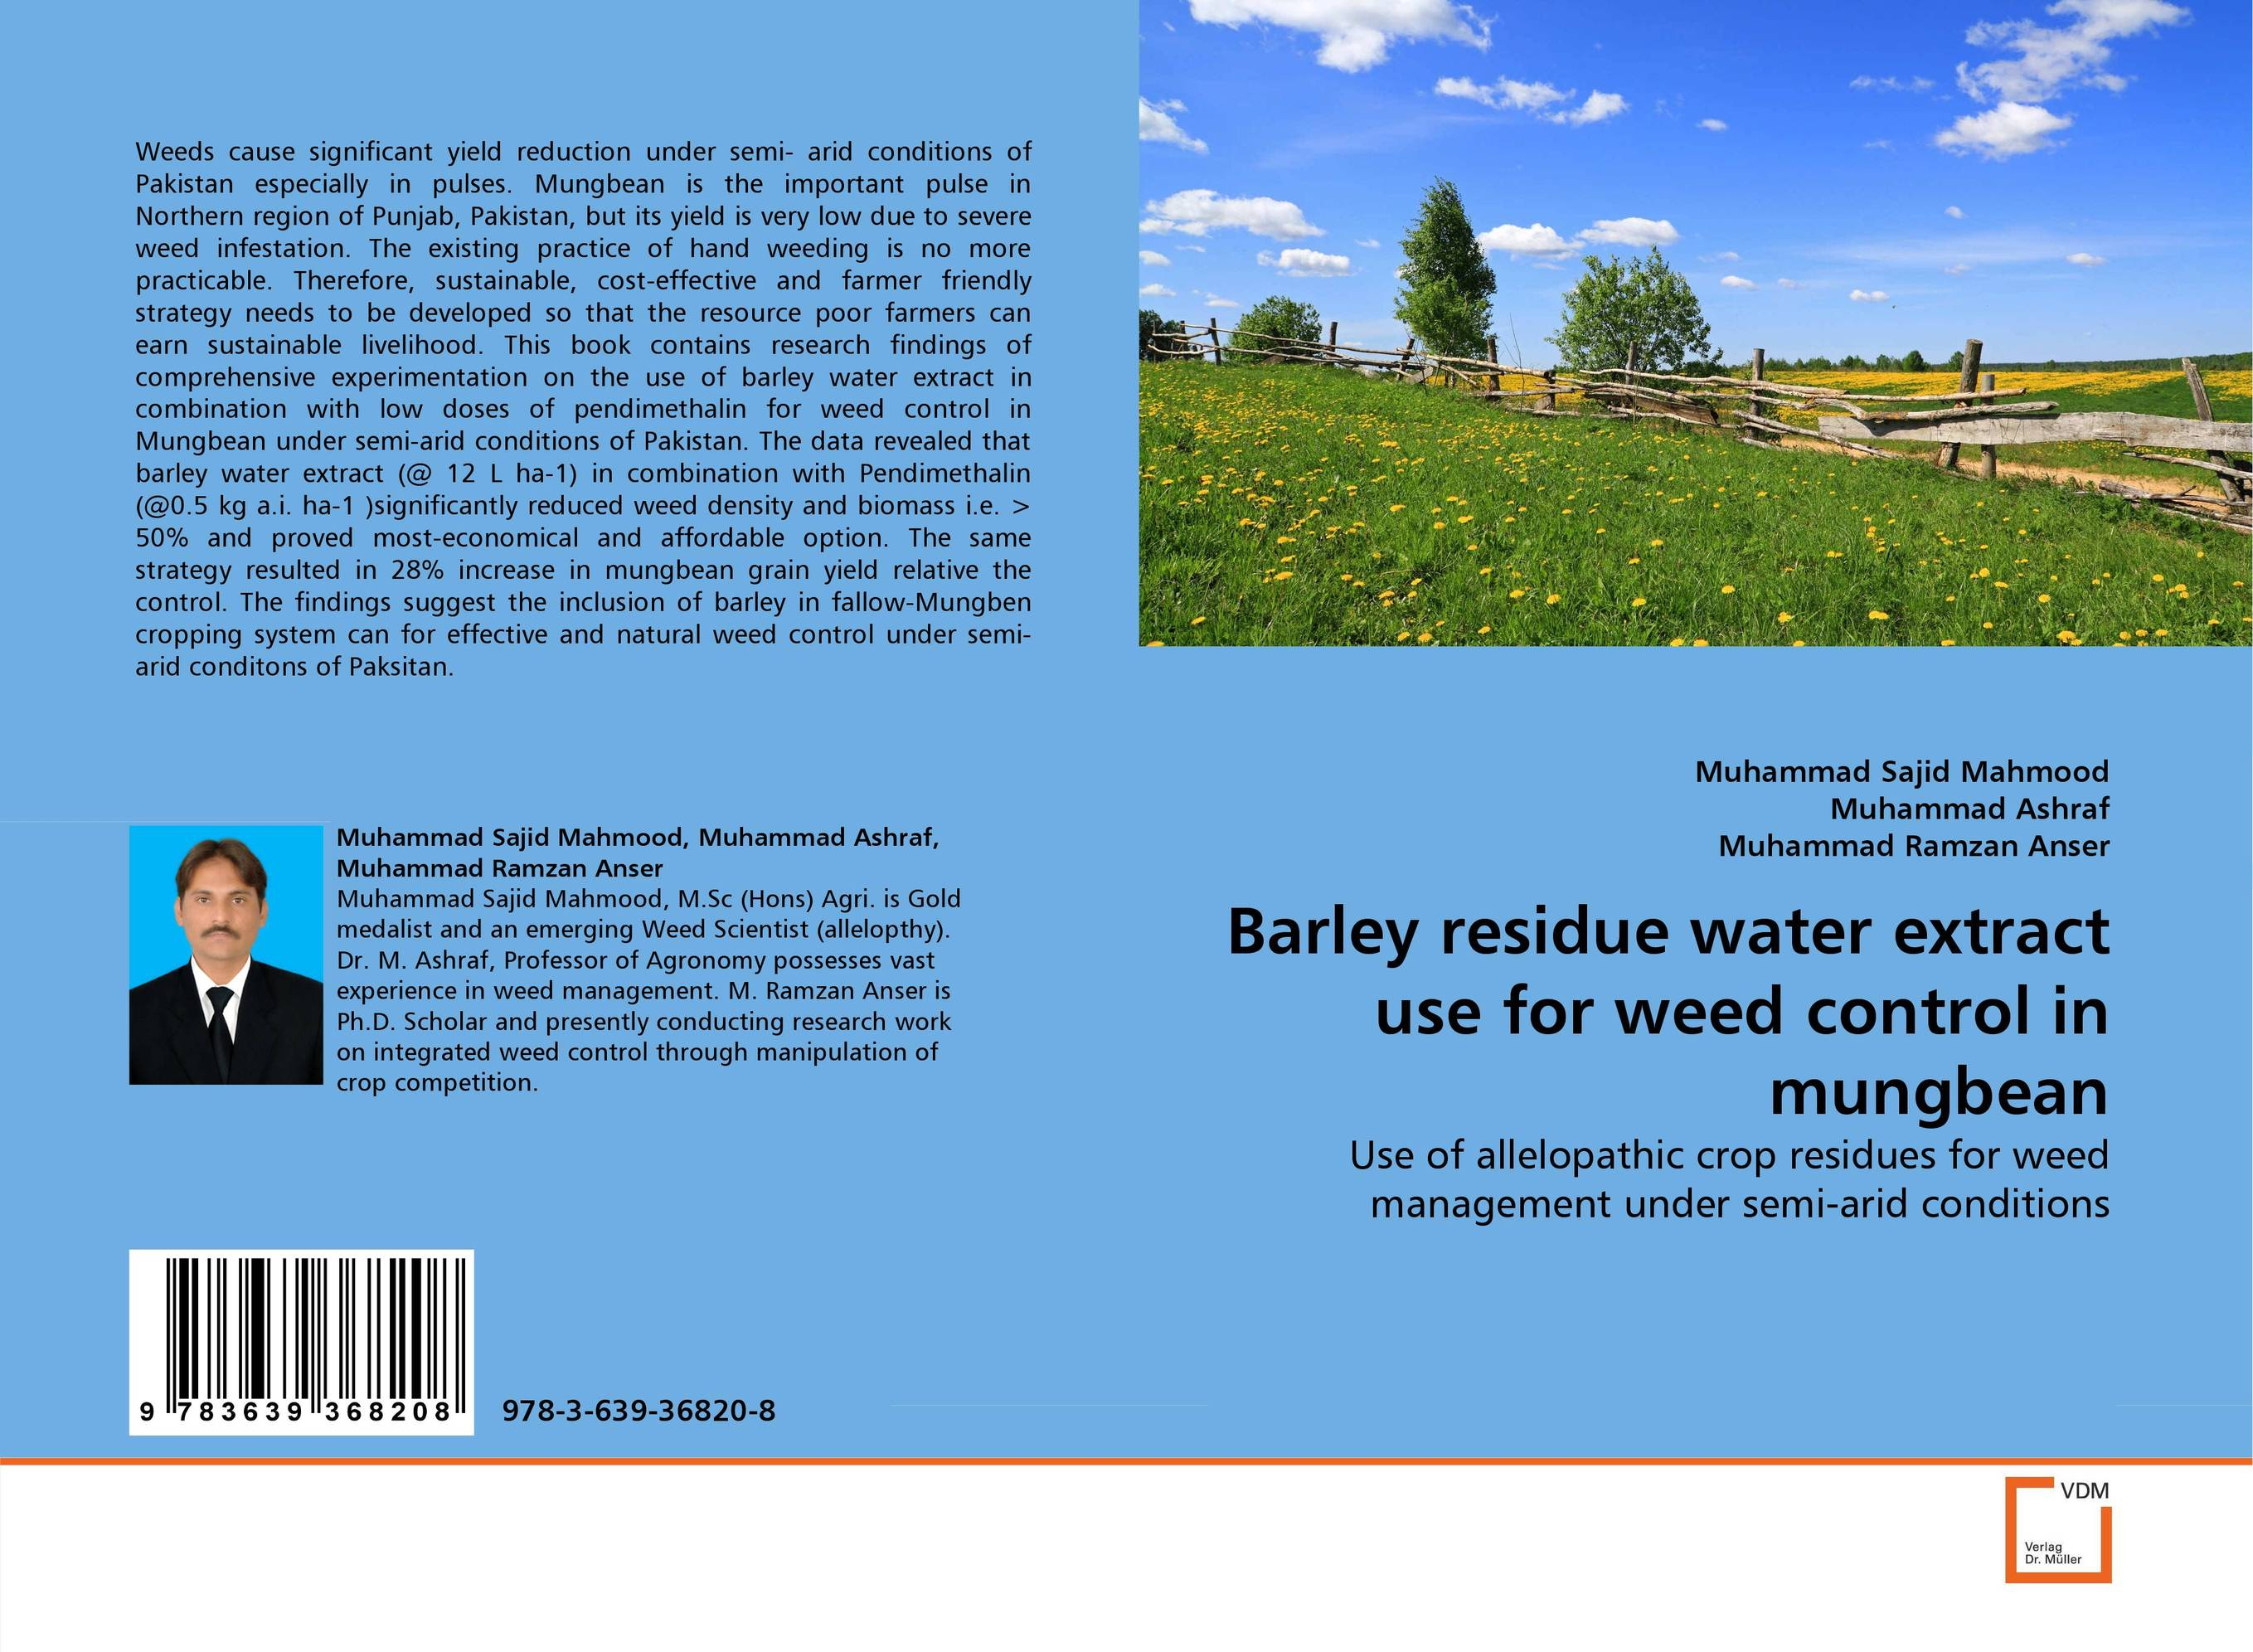 Barley residue water extract use for weed control in mungbean butterflies in the barley